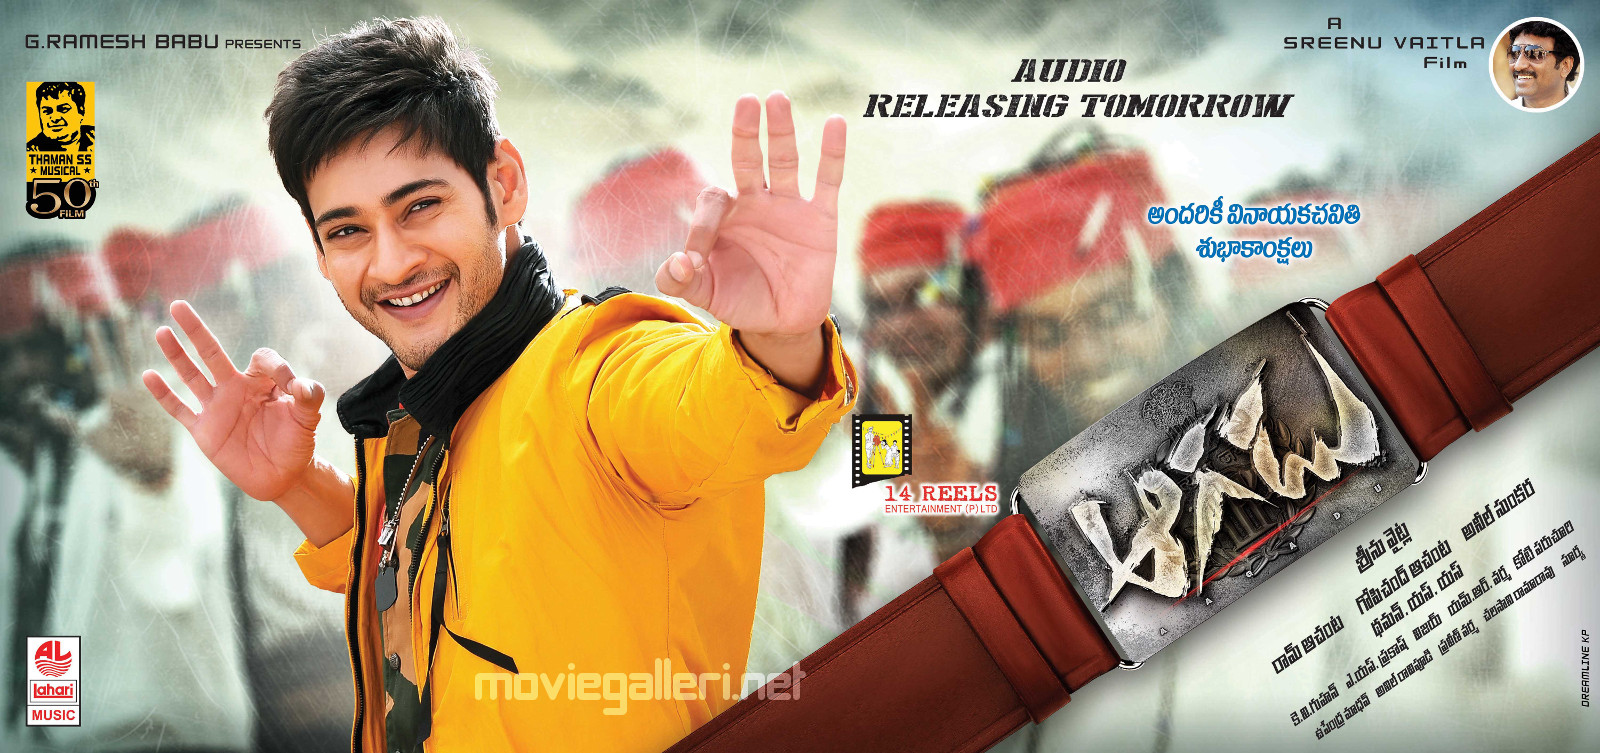 Mahesh Babu's Aagadu Movie Vinayaka Chaturthi Special Wallpapers